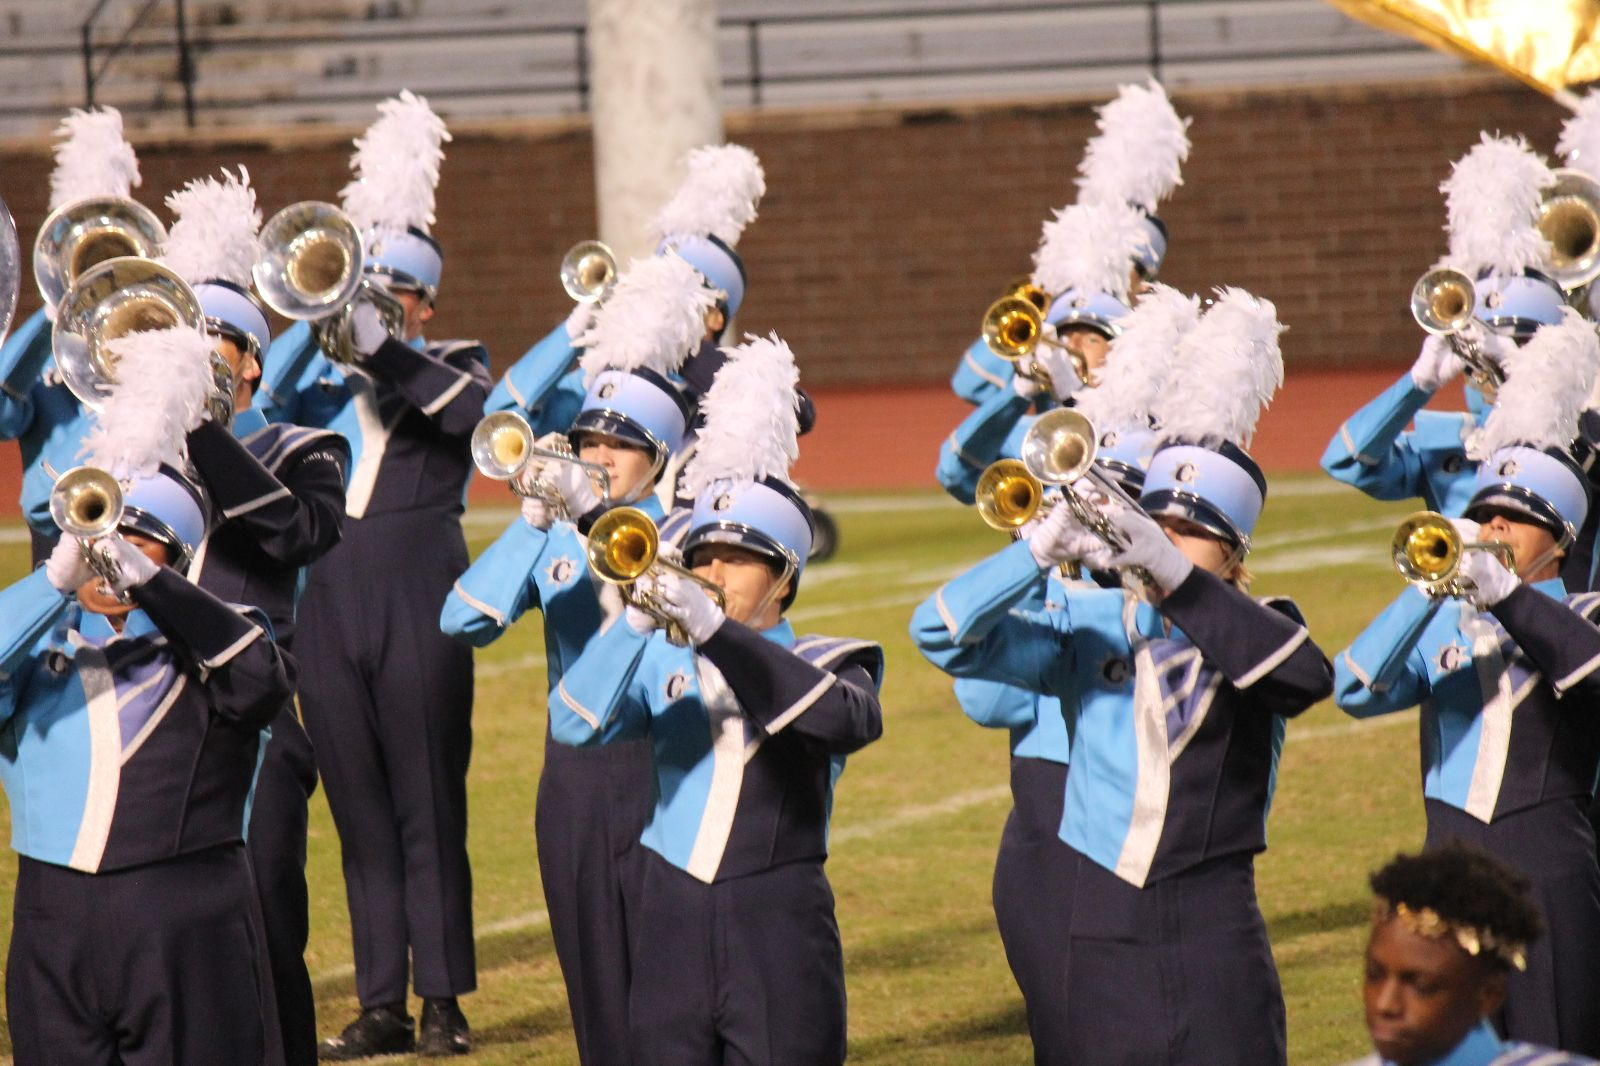 Colleton County Band of Blue to Perform on ABC's Good Morning America at the National Cherry Blossom Festival